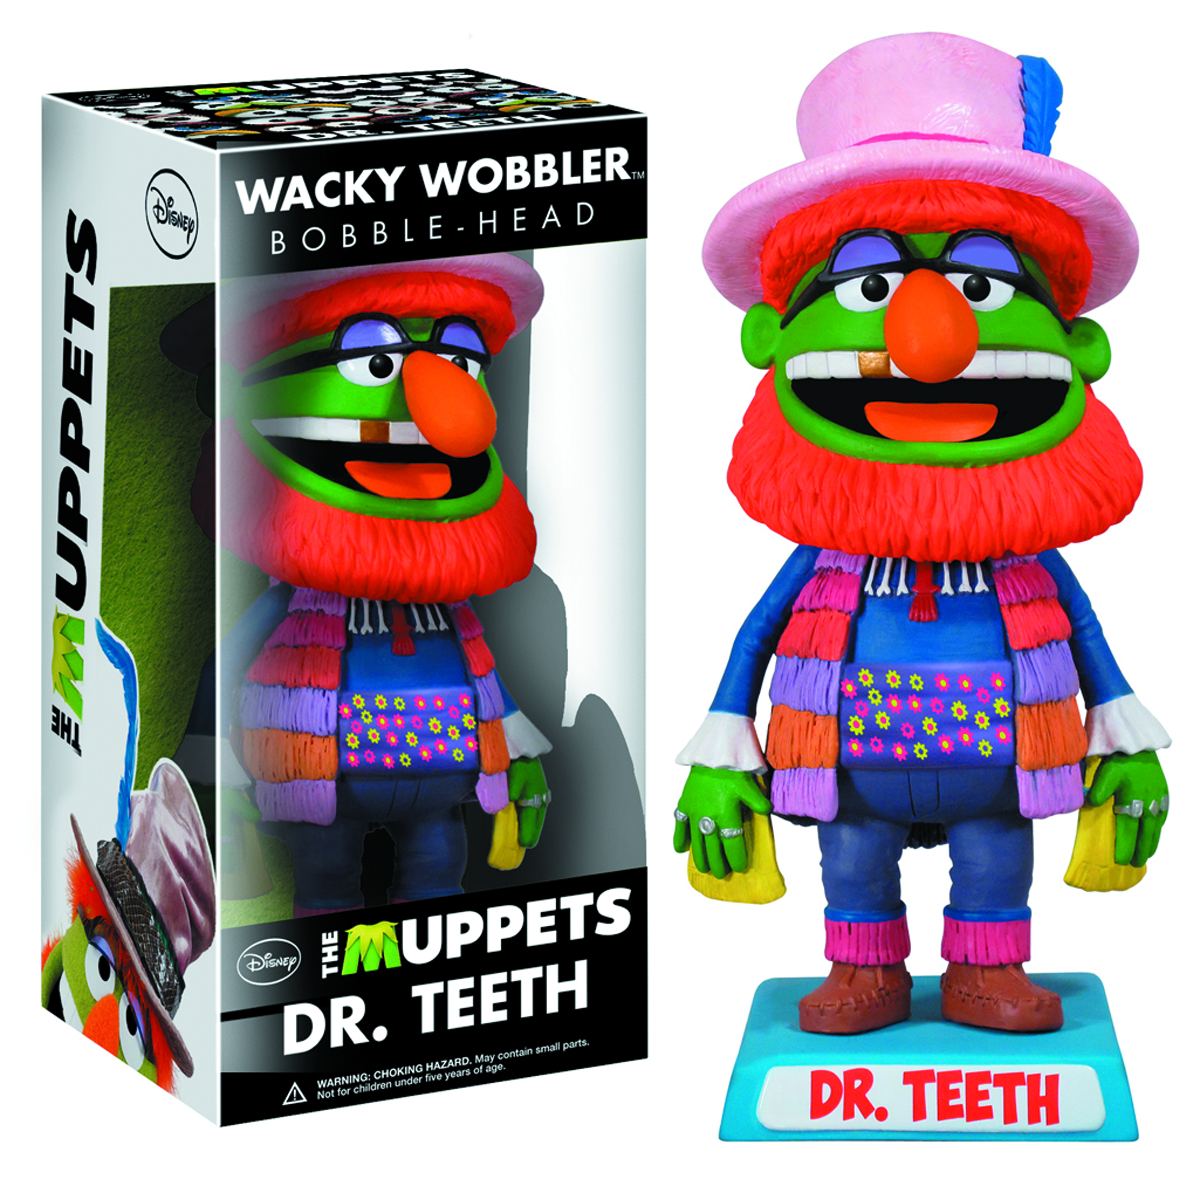 MUPPETS DR TEETH WACKY WOBBLER